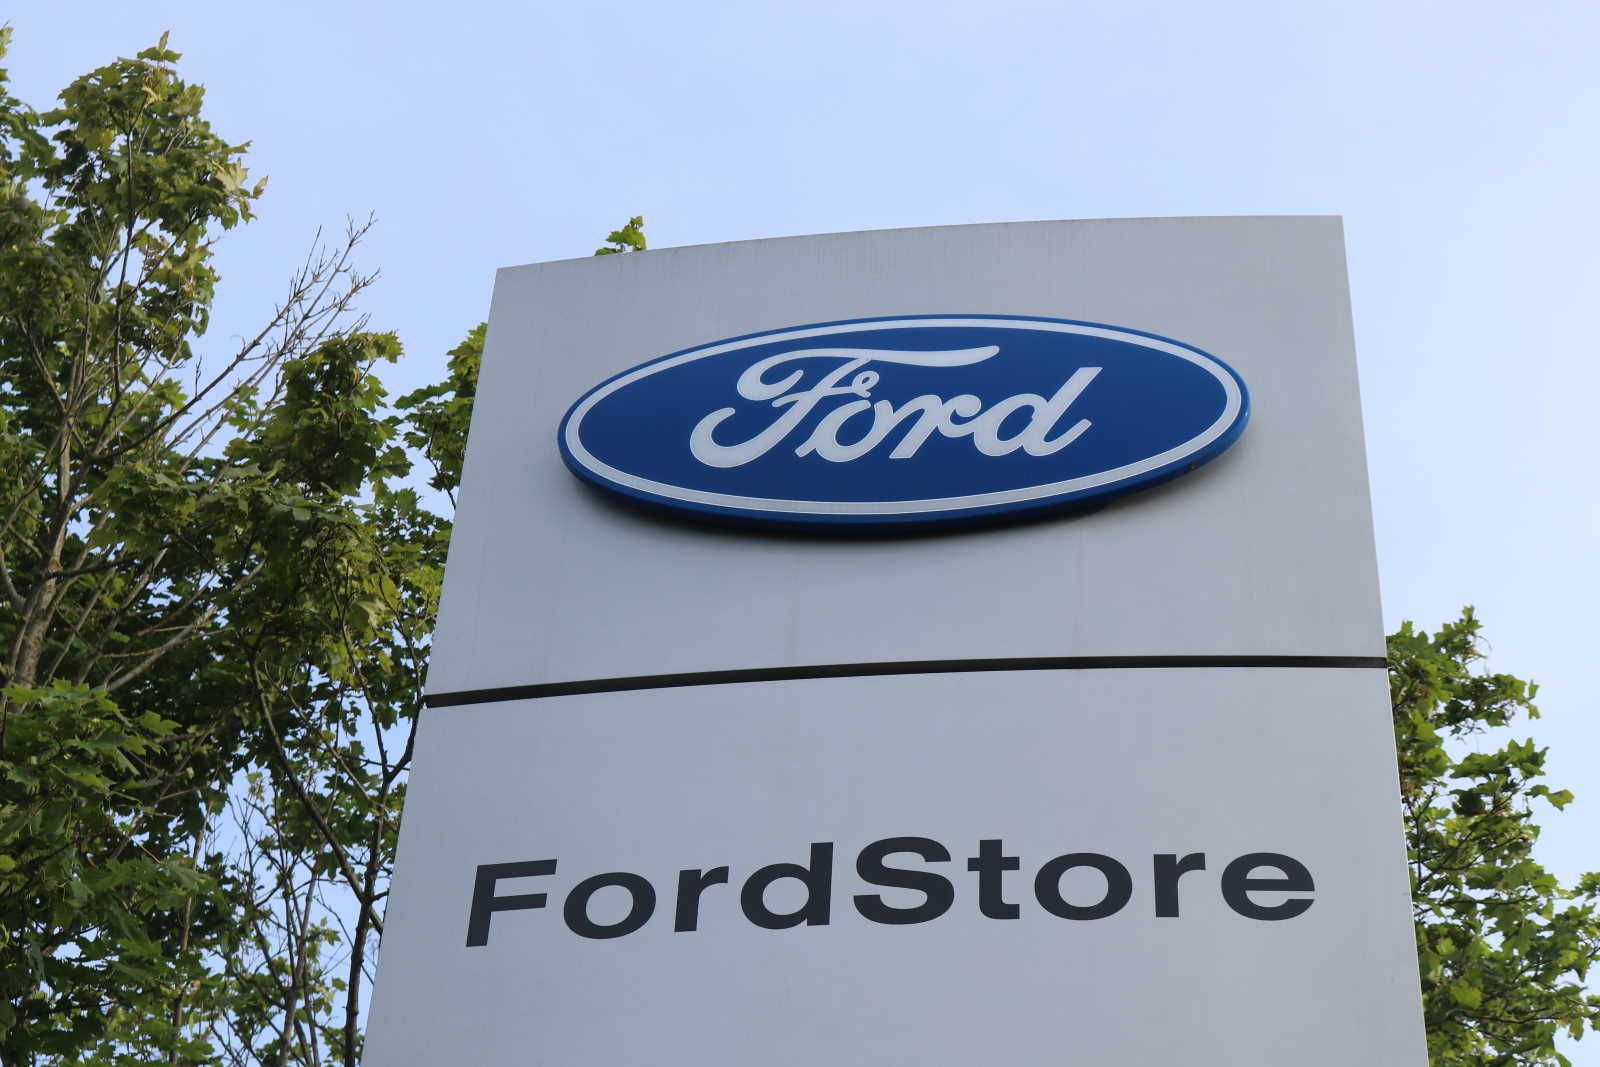 Ford Store